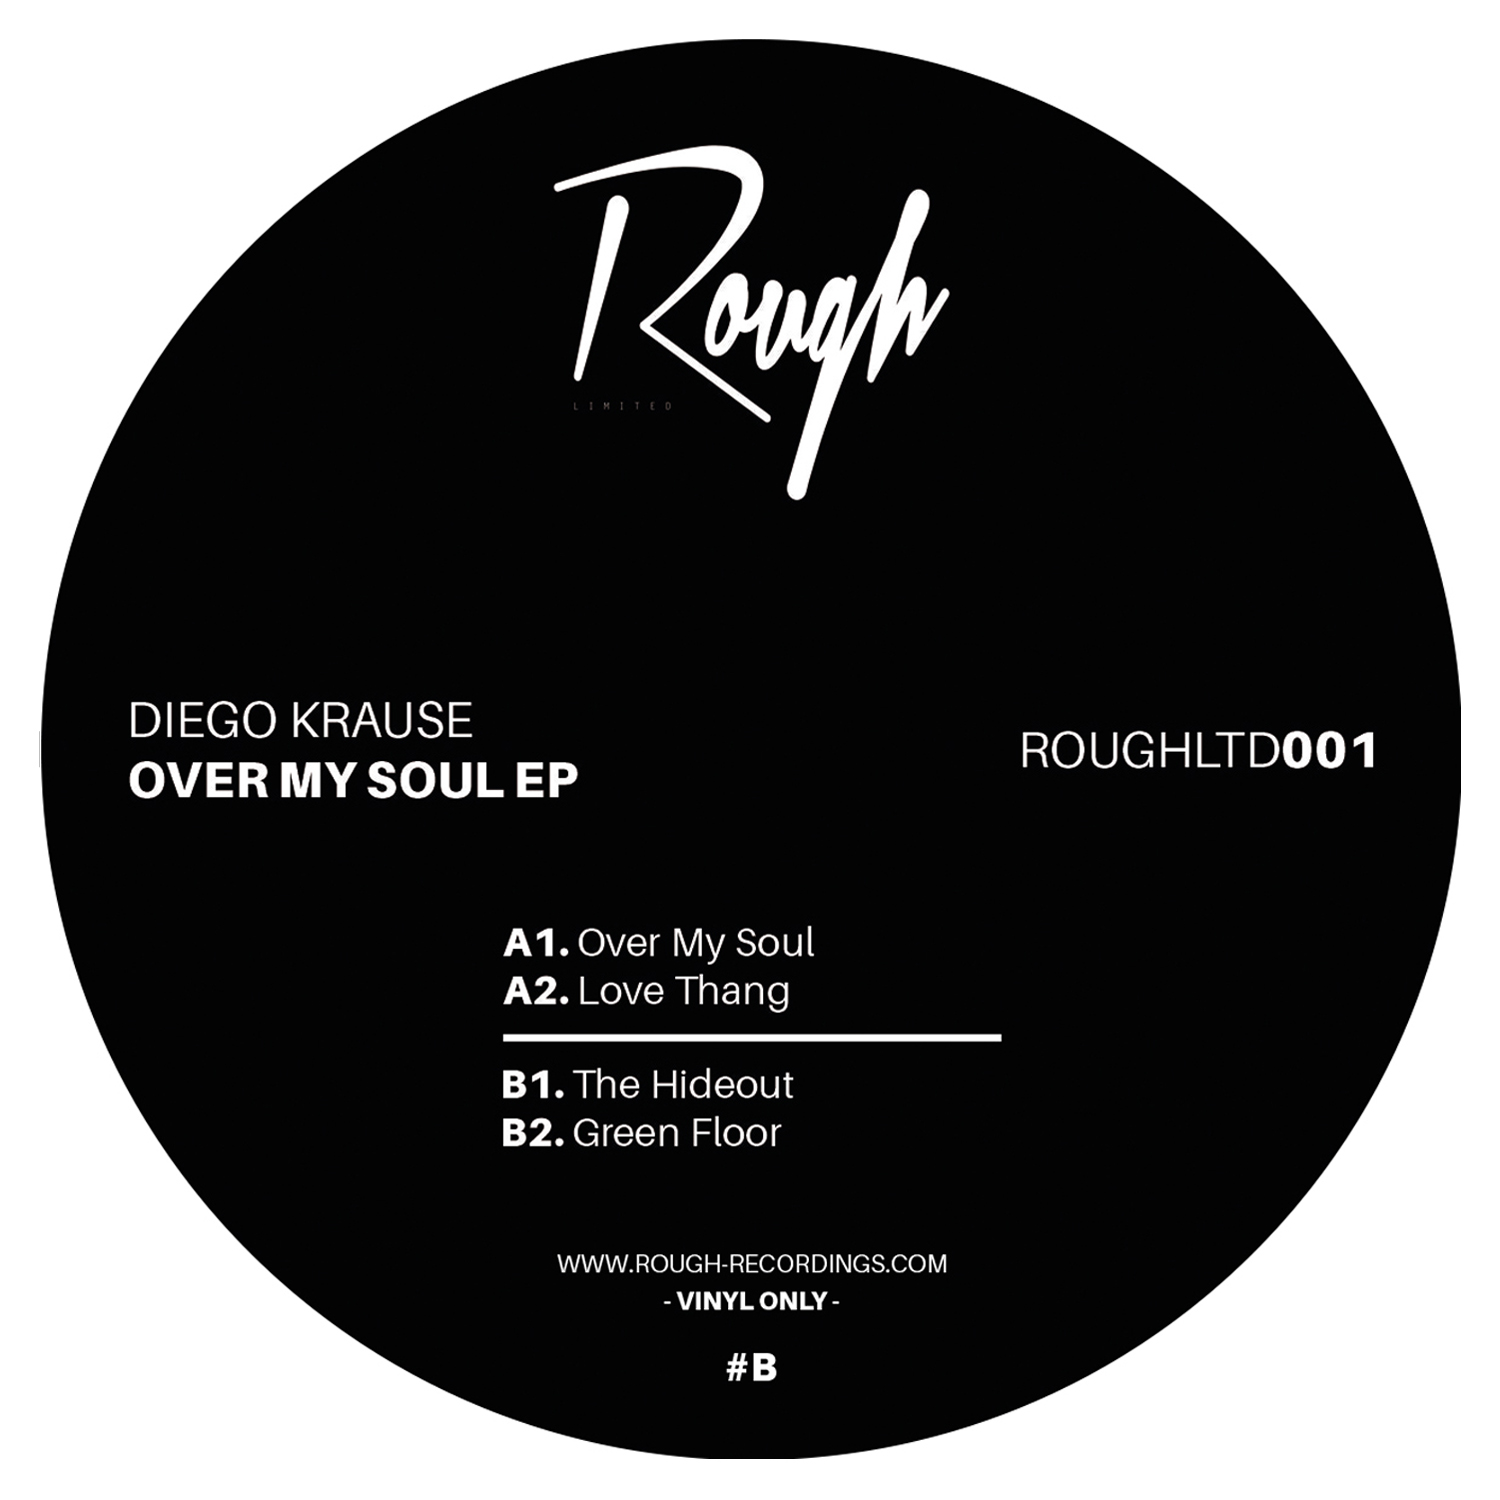 https://www.rough-recordings.com/wp-content/uploads/ROUGHLTD001_B-1.jpg